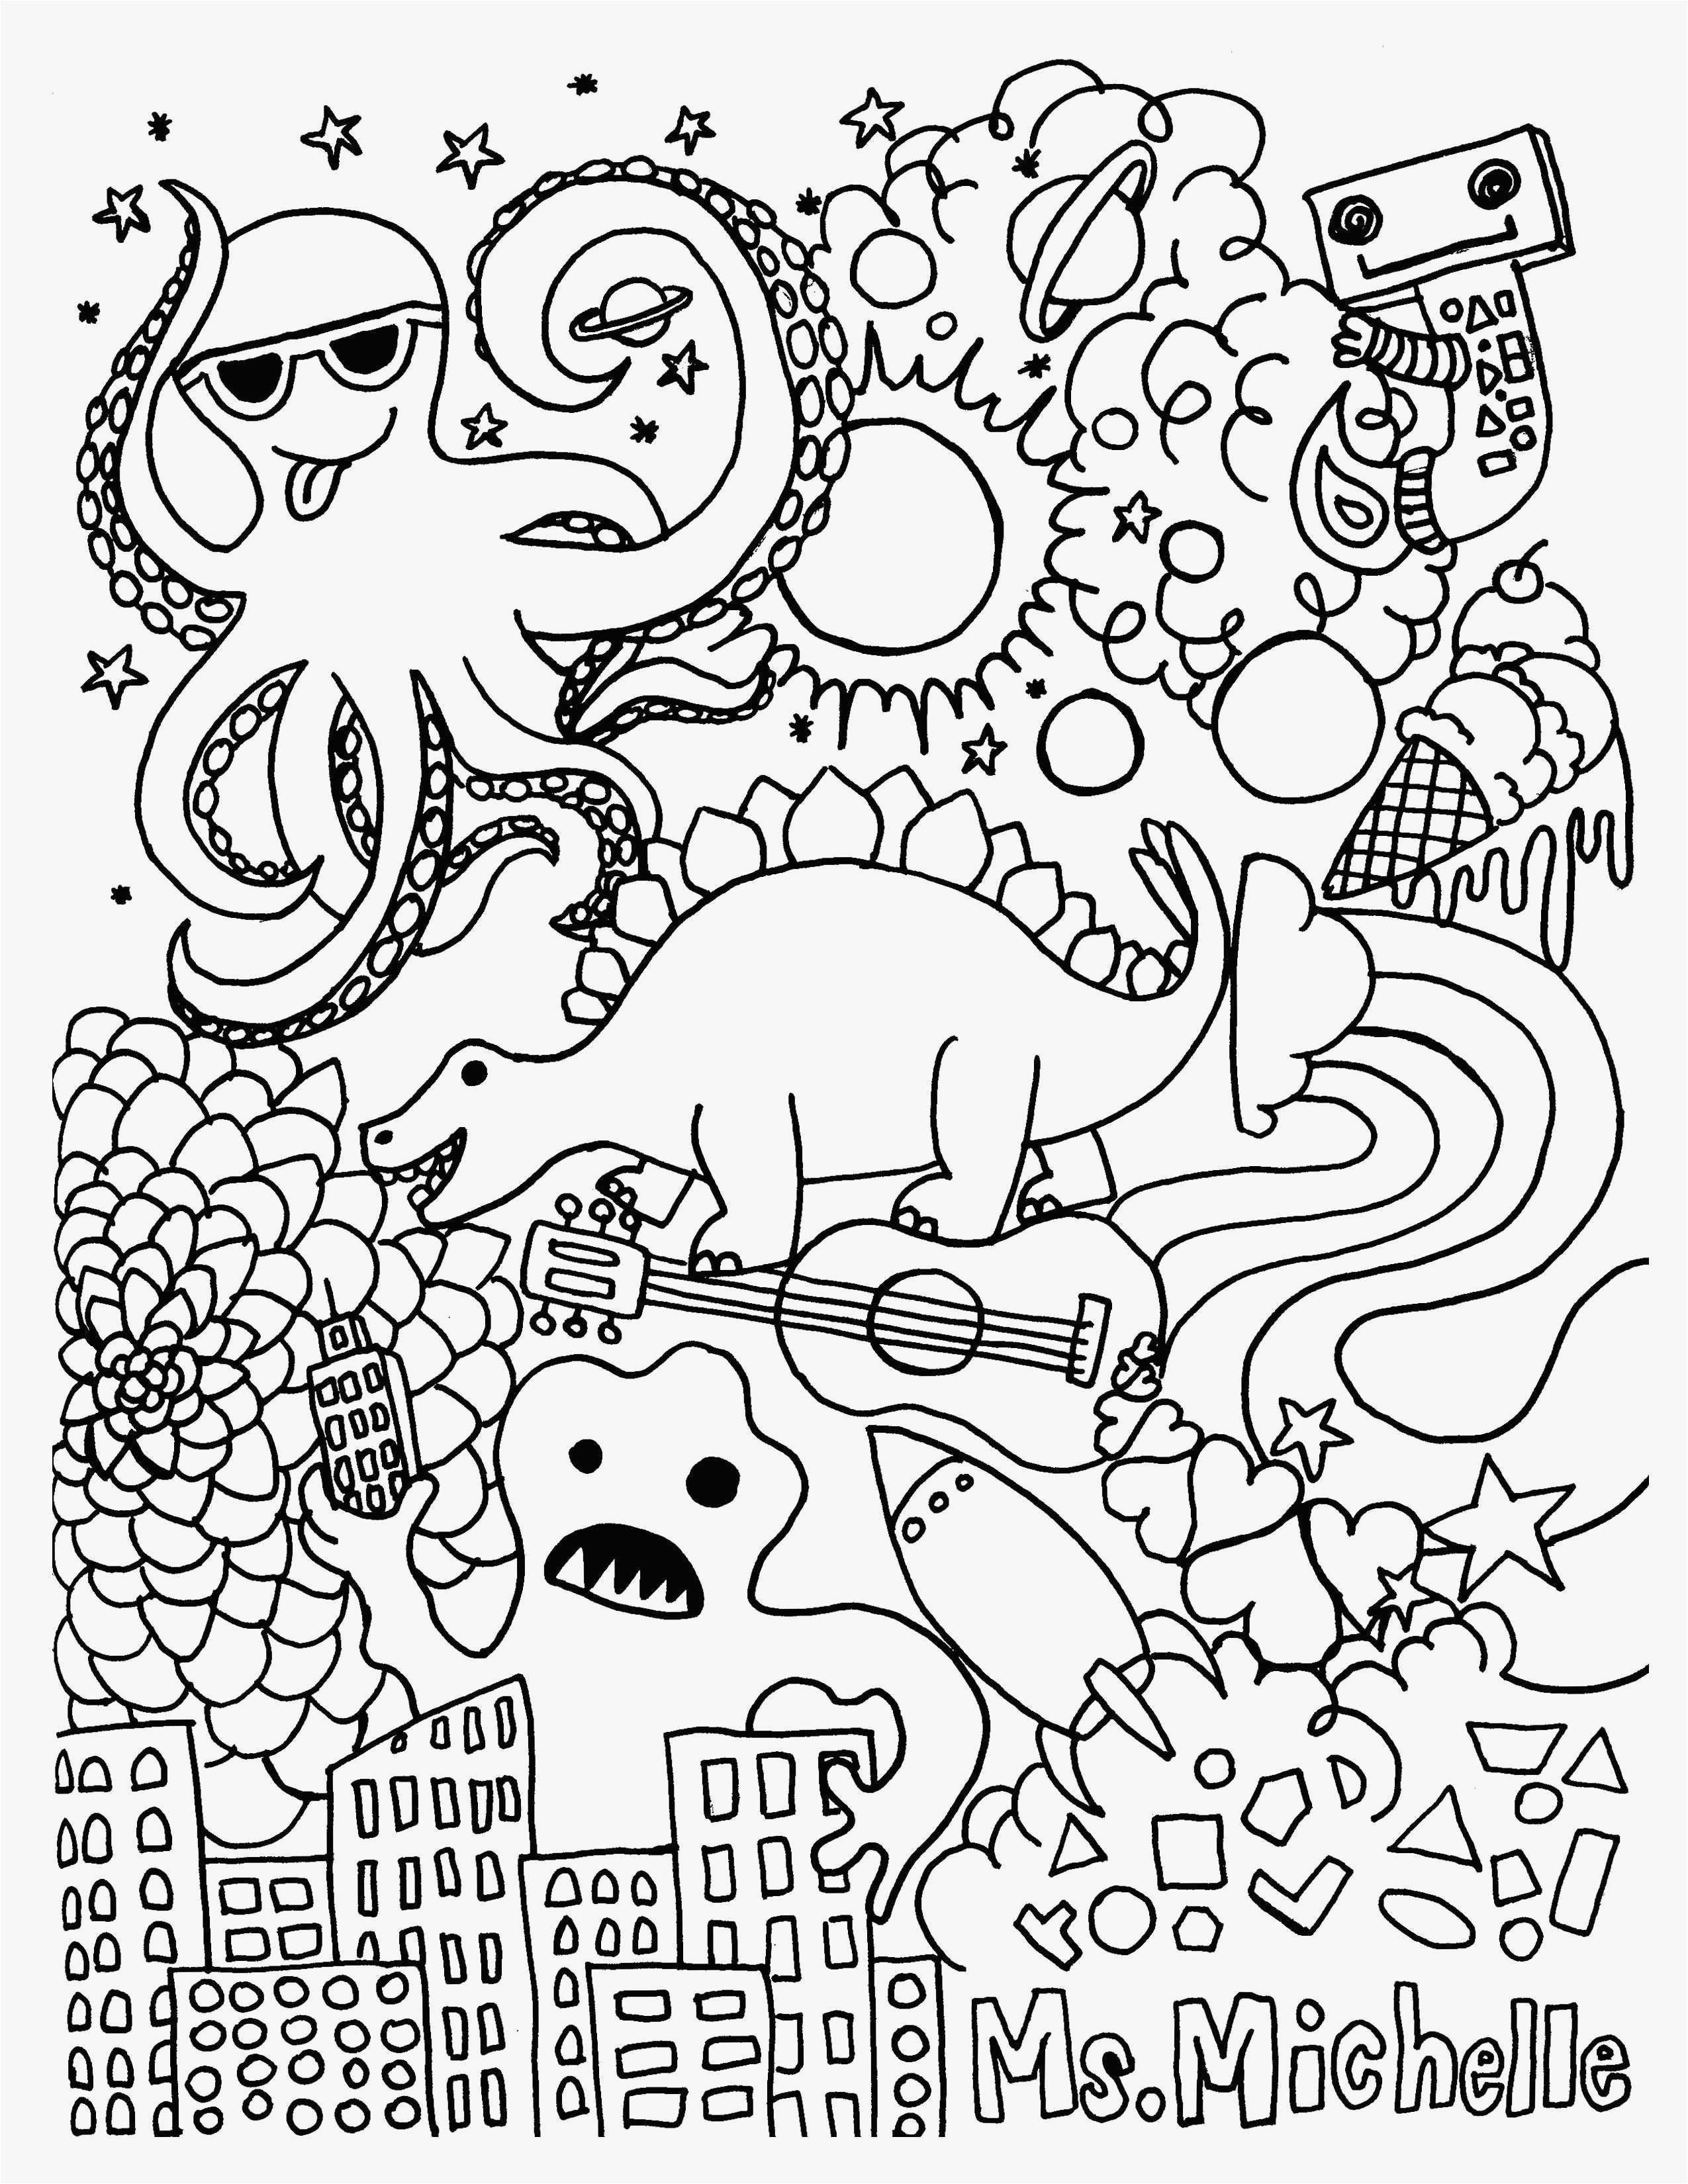 Pin On Coloring Pages Ideas For Kids And Adult Printable